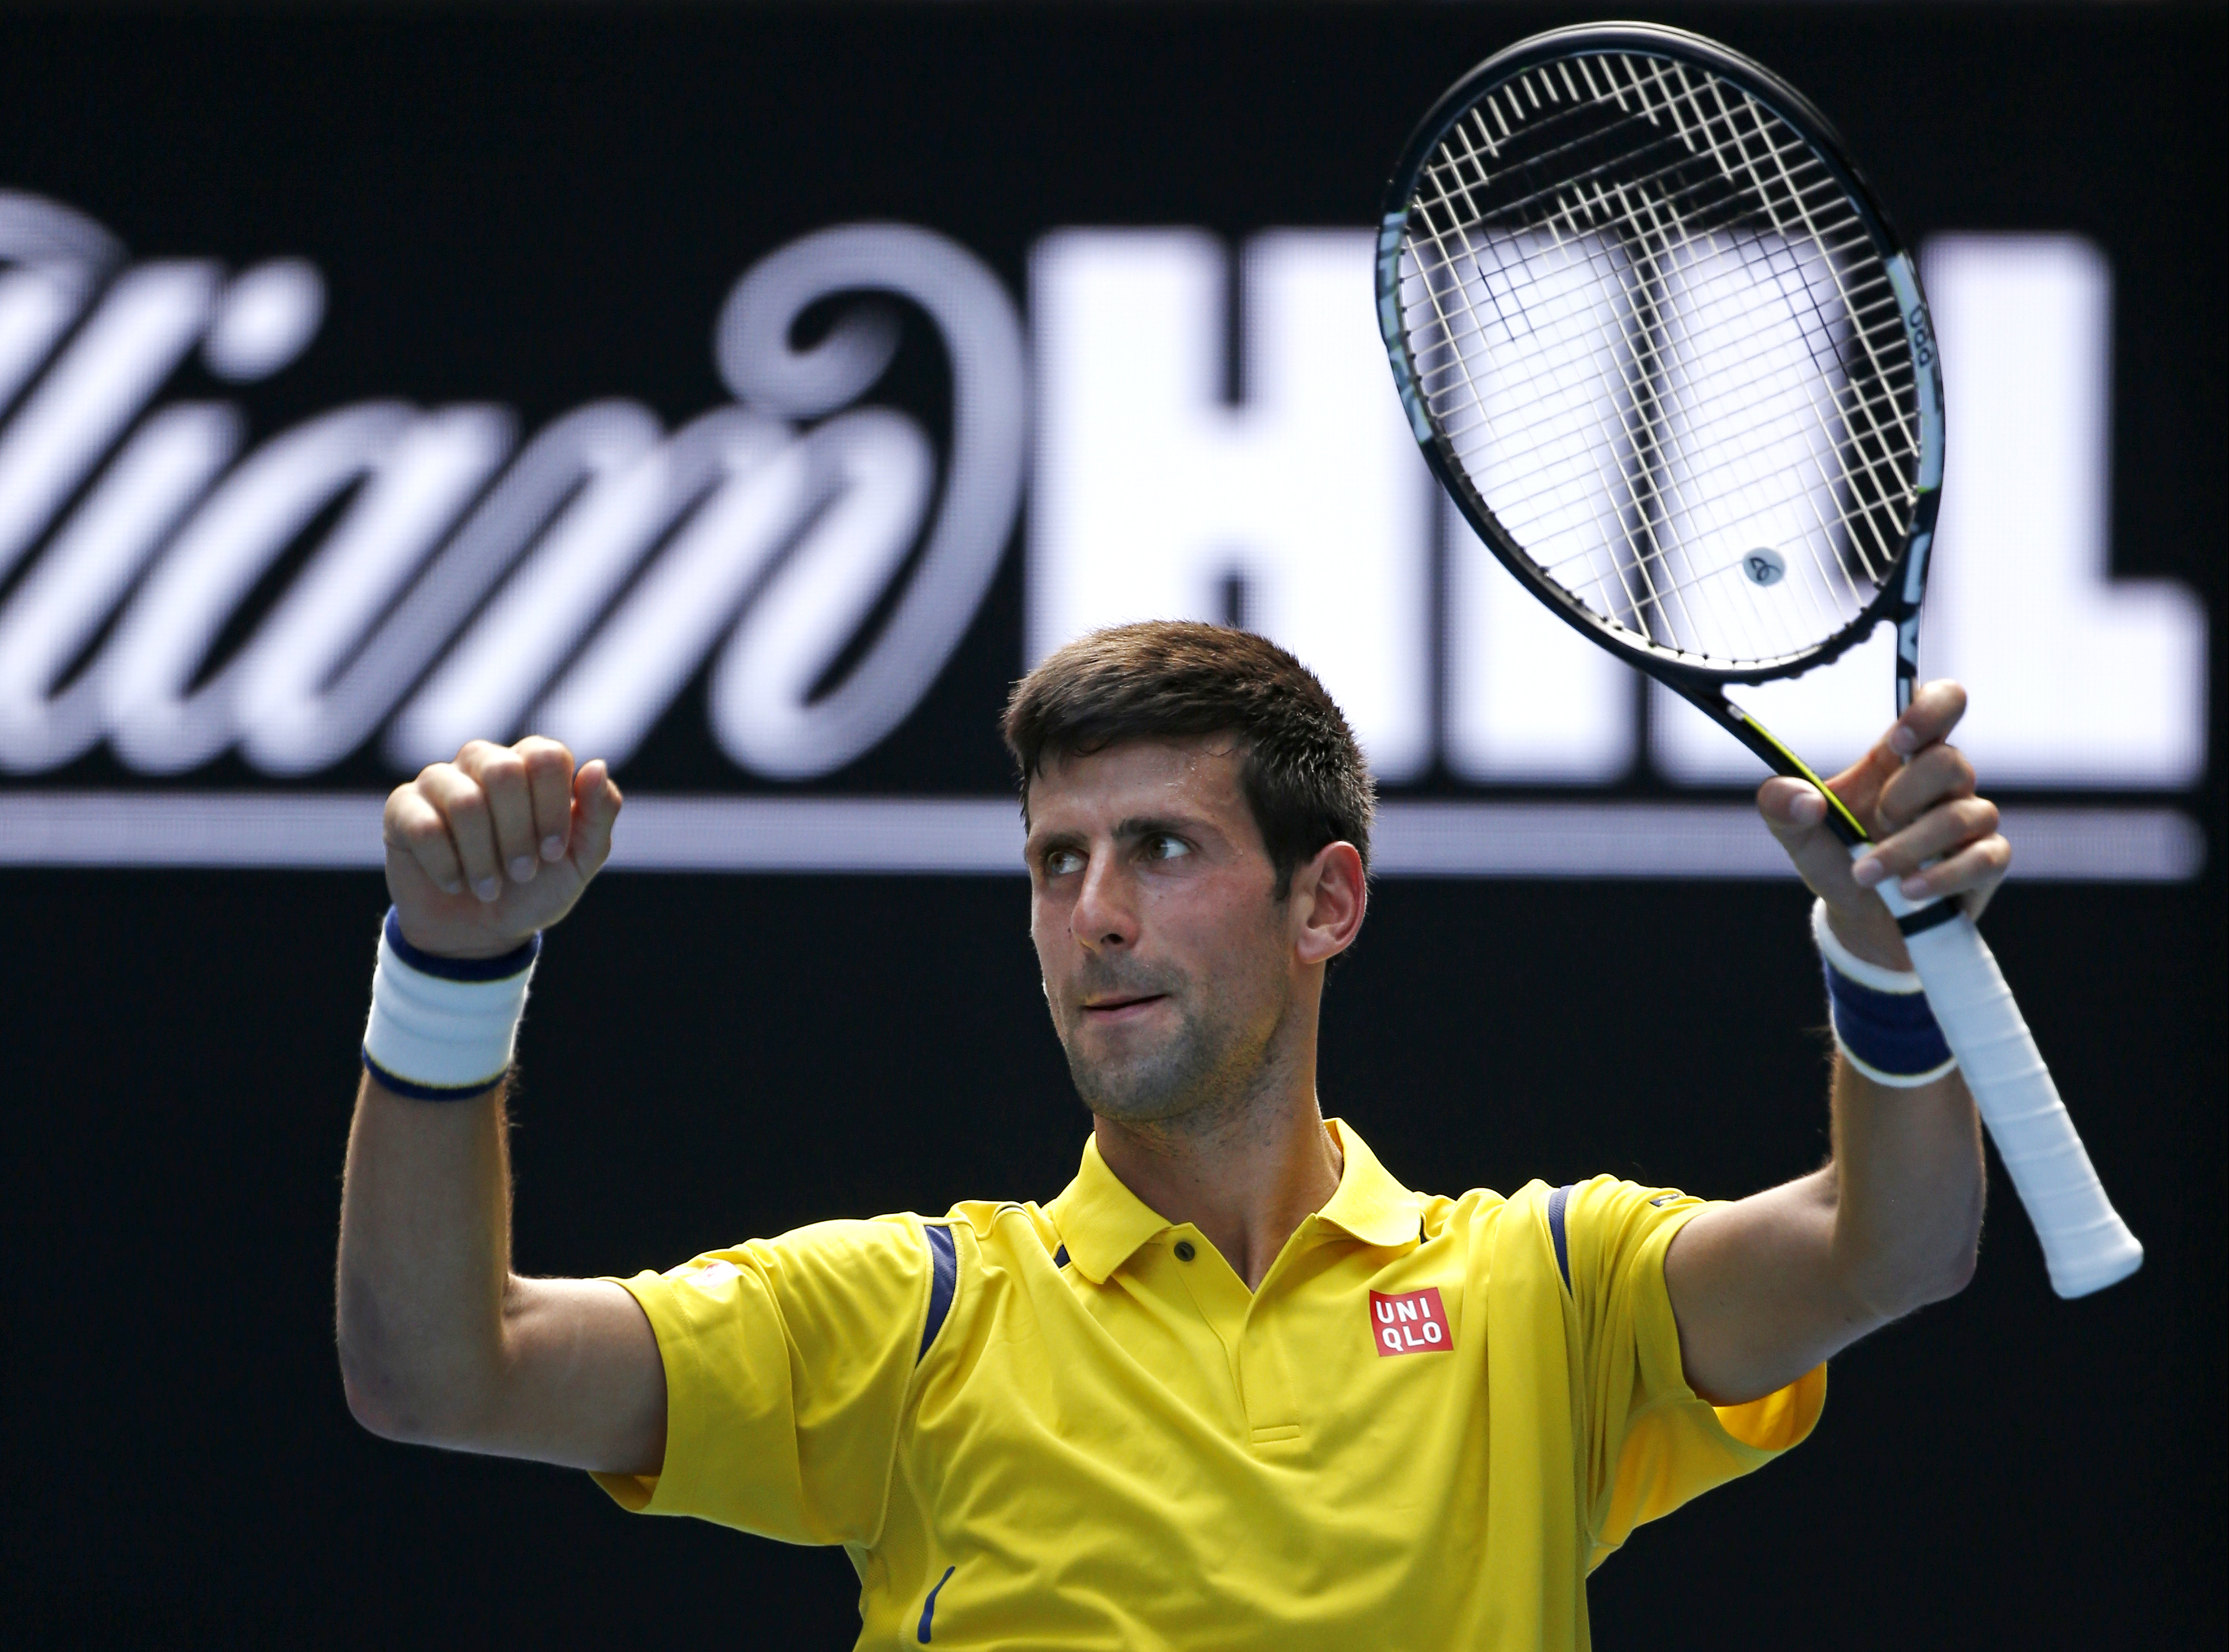 Novak Djokovic of Serbia celebrates after defeating Chung Hyeon of South Korea during their first round match at the Australian Open tennis championships in Melbourne, Australia, Monday, Jan. 18, 2016.(AP Photo/Vincent Thian)